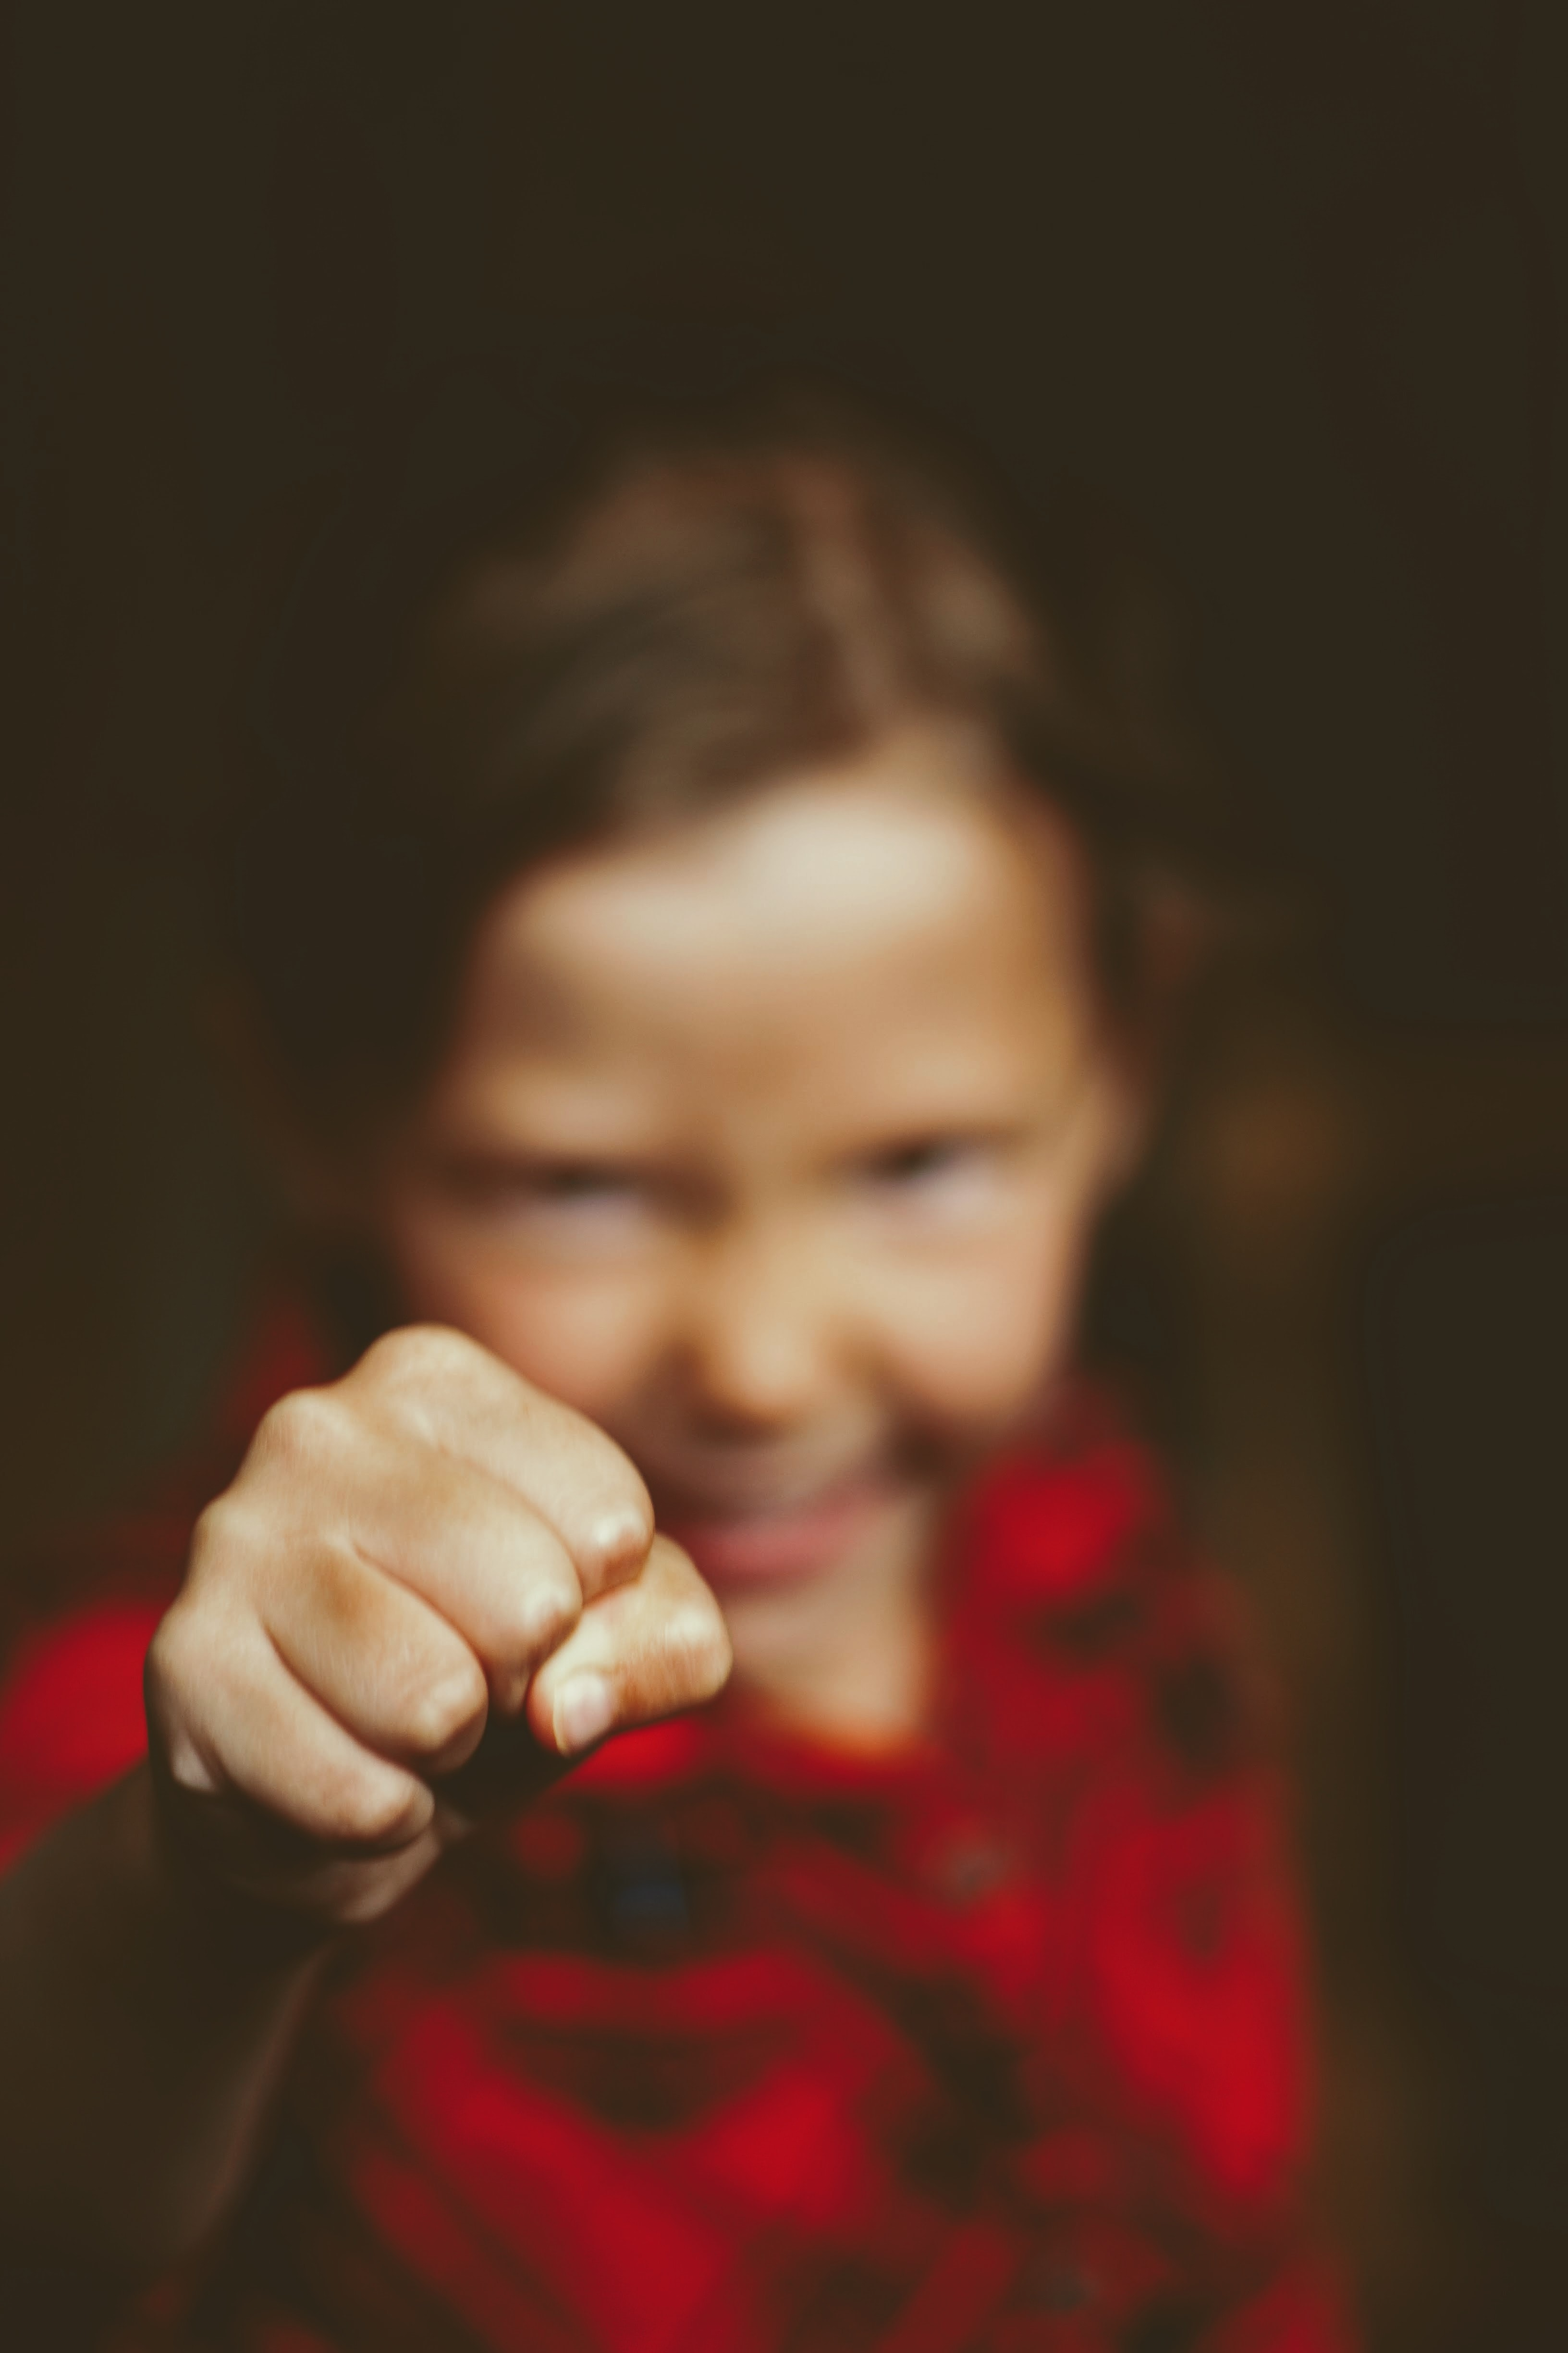 girl showing her fist